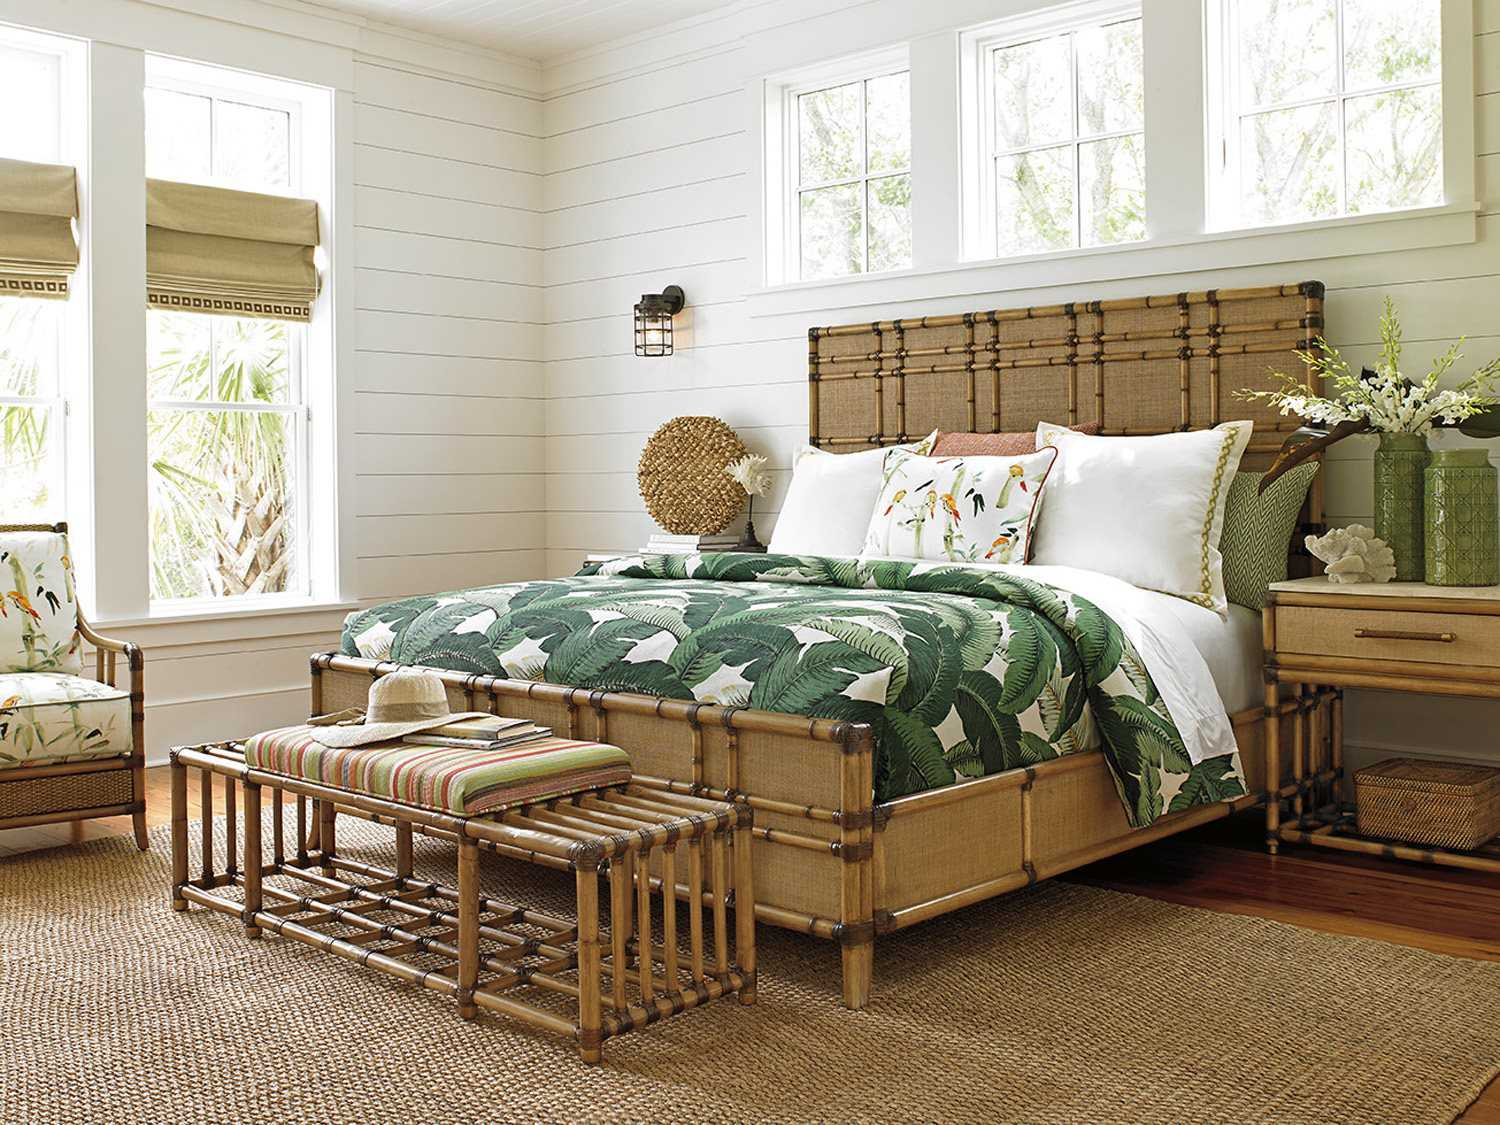 Tommy Bahama Twin Palms Panel Bed Bedroom Set Totwinpbedset4